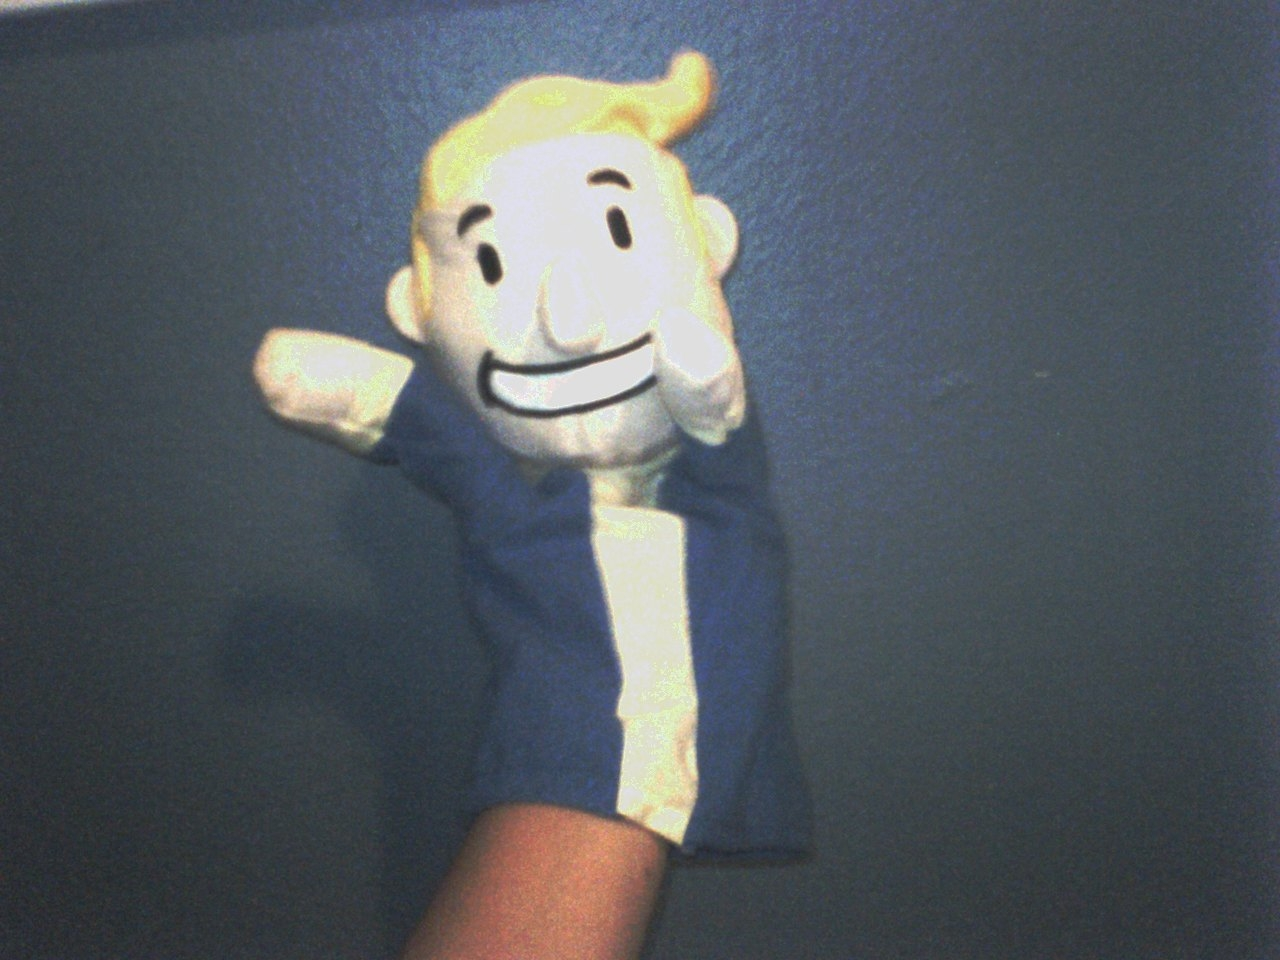 PAX promotional puppet